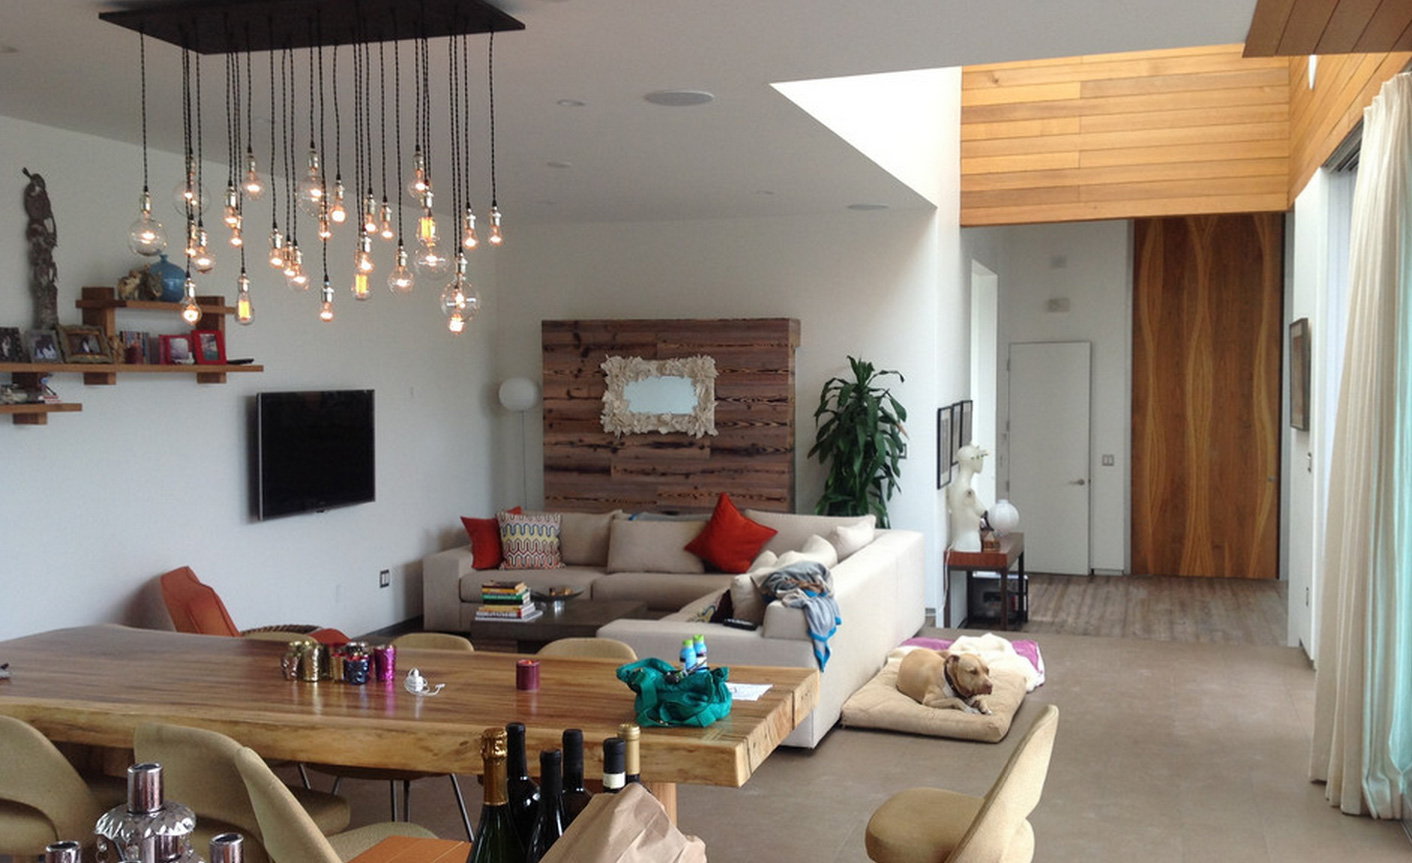 8 Eco Friendly Lighting Options That Will Make You See The